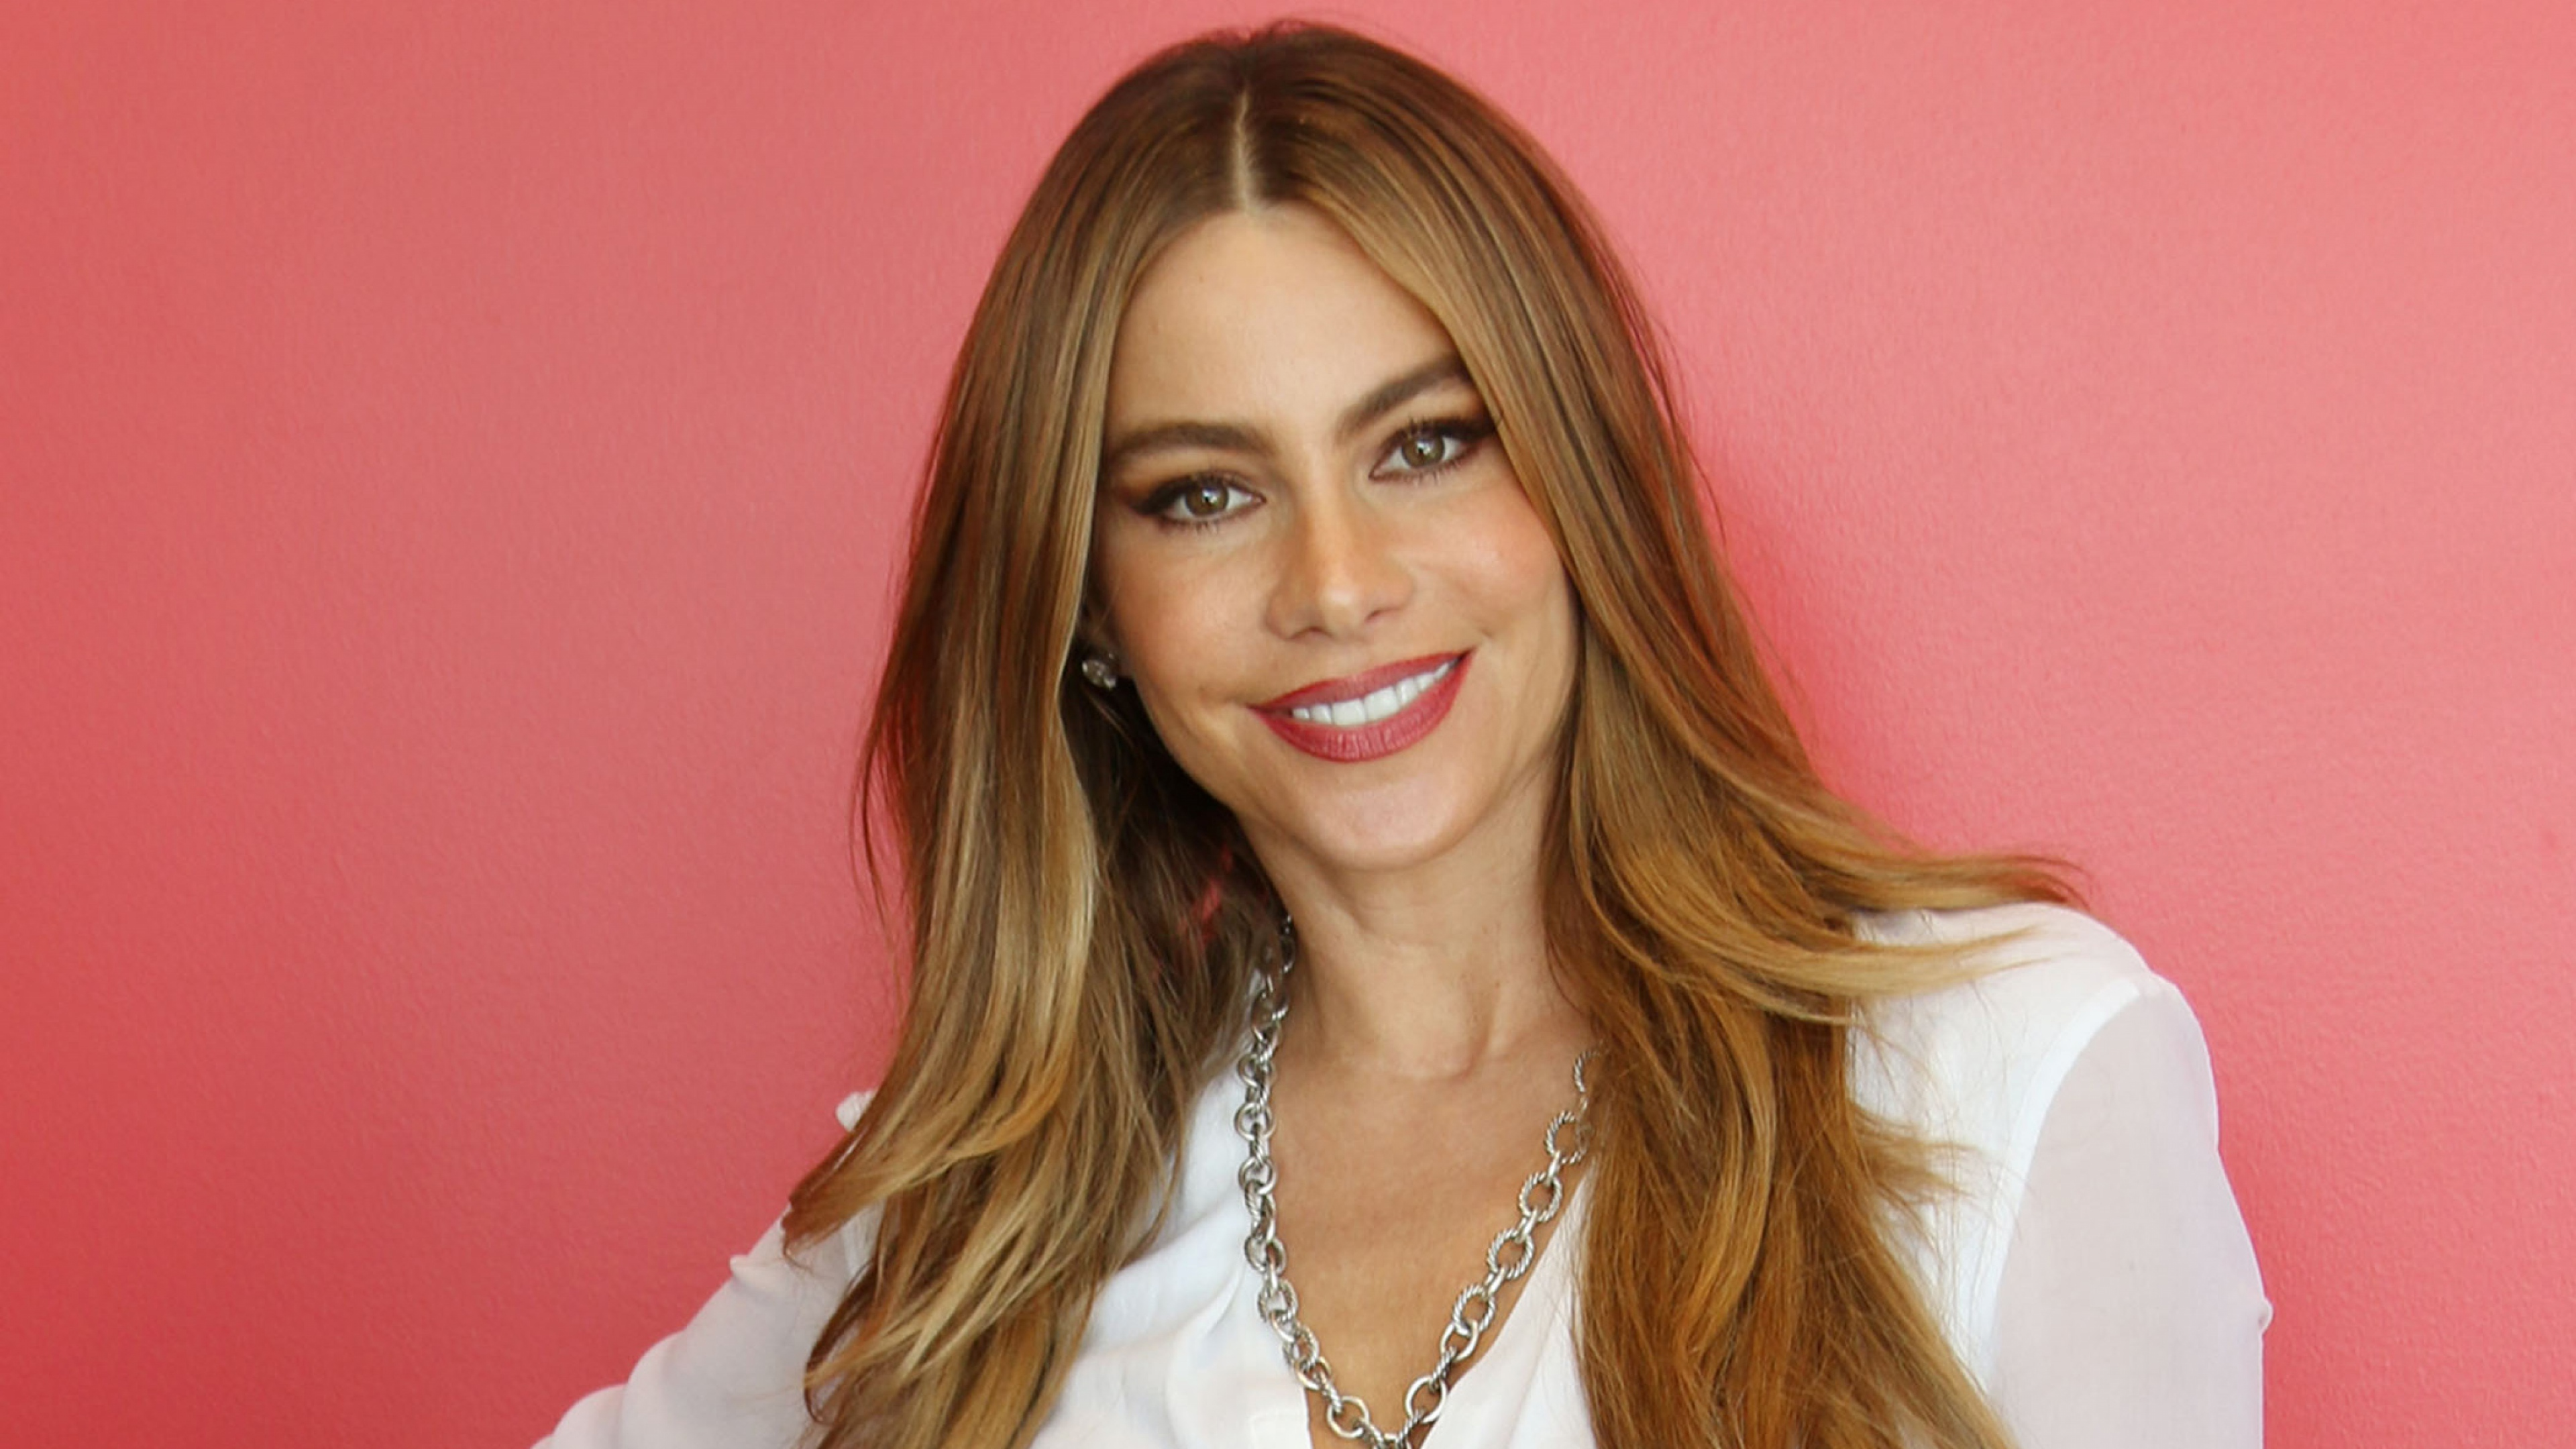 Sofia Vergara Wallpapers Images Photos Pictures Backgrounds 3840x2160